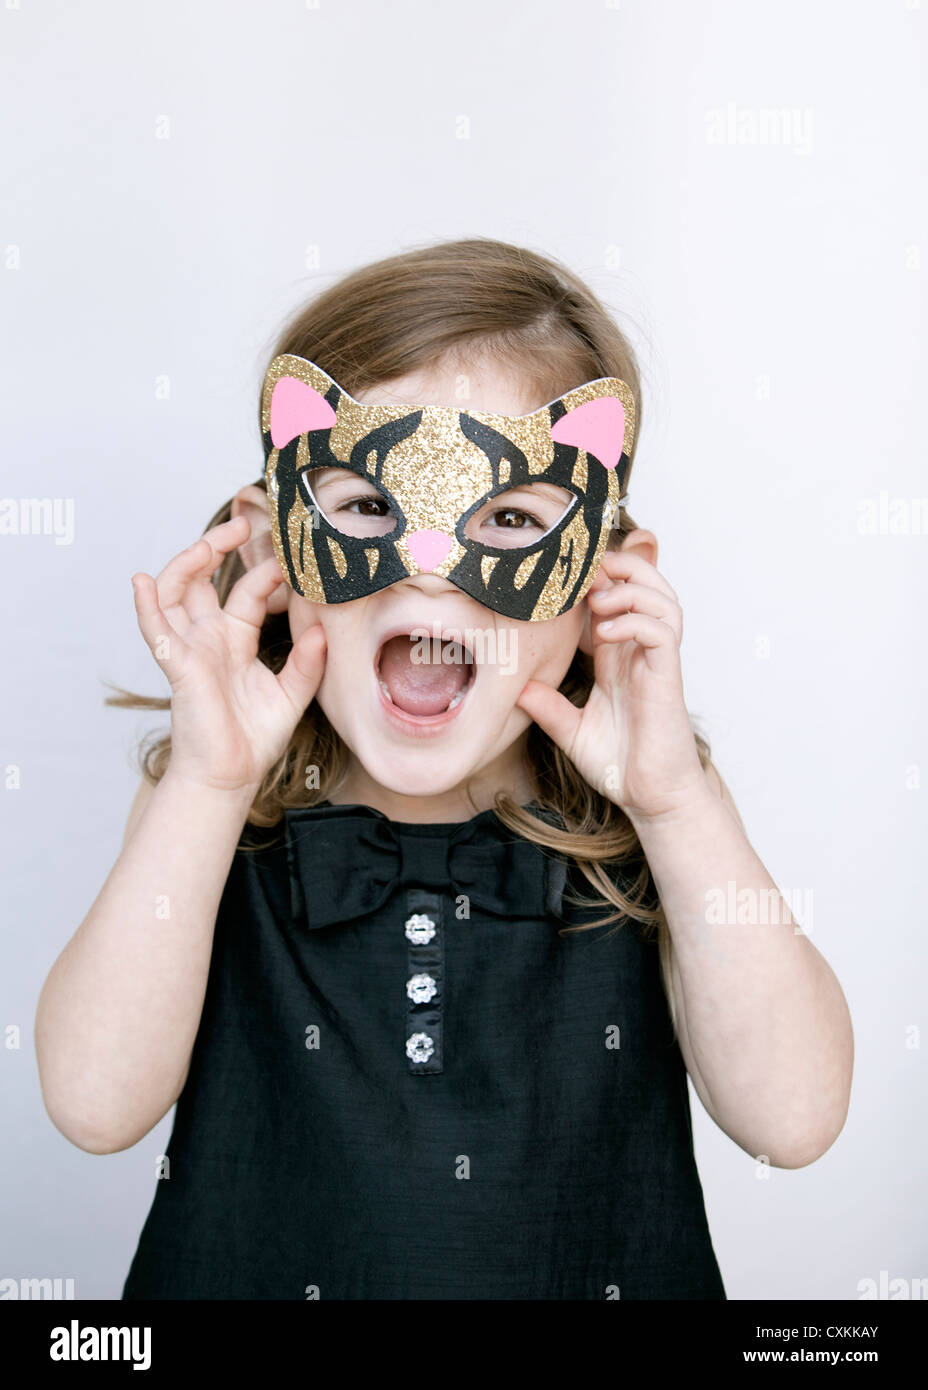 Little girl with tiger mask - Stock Image